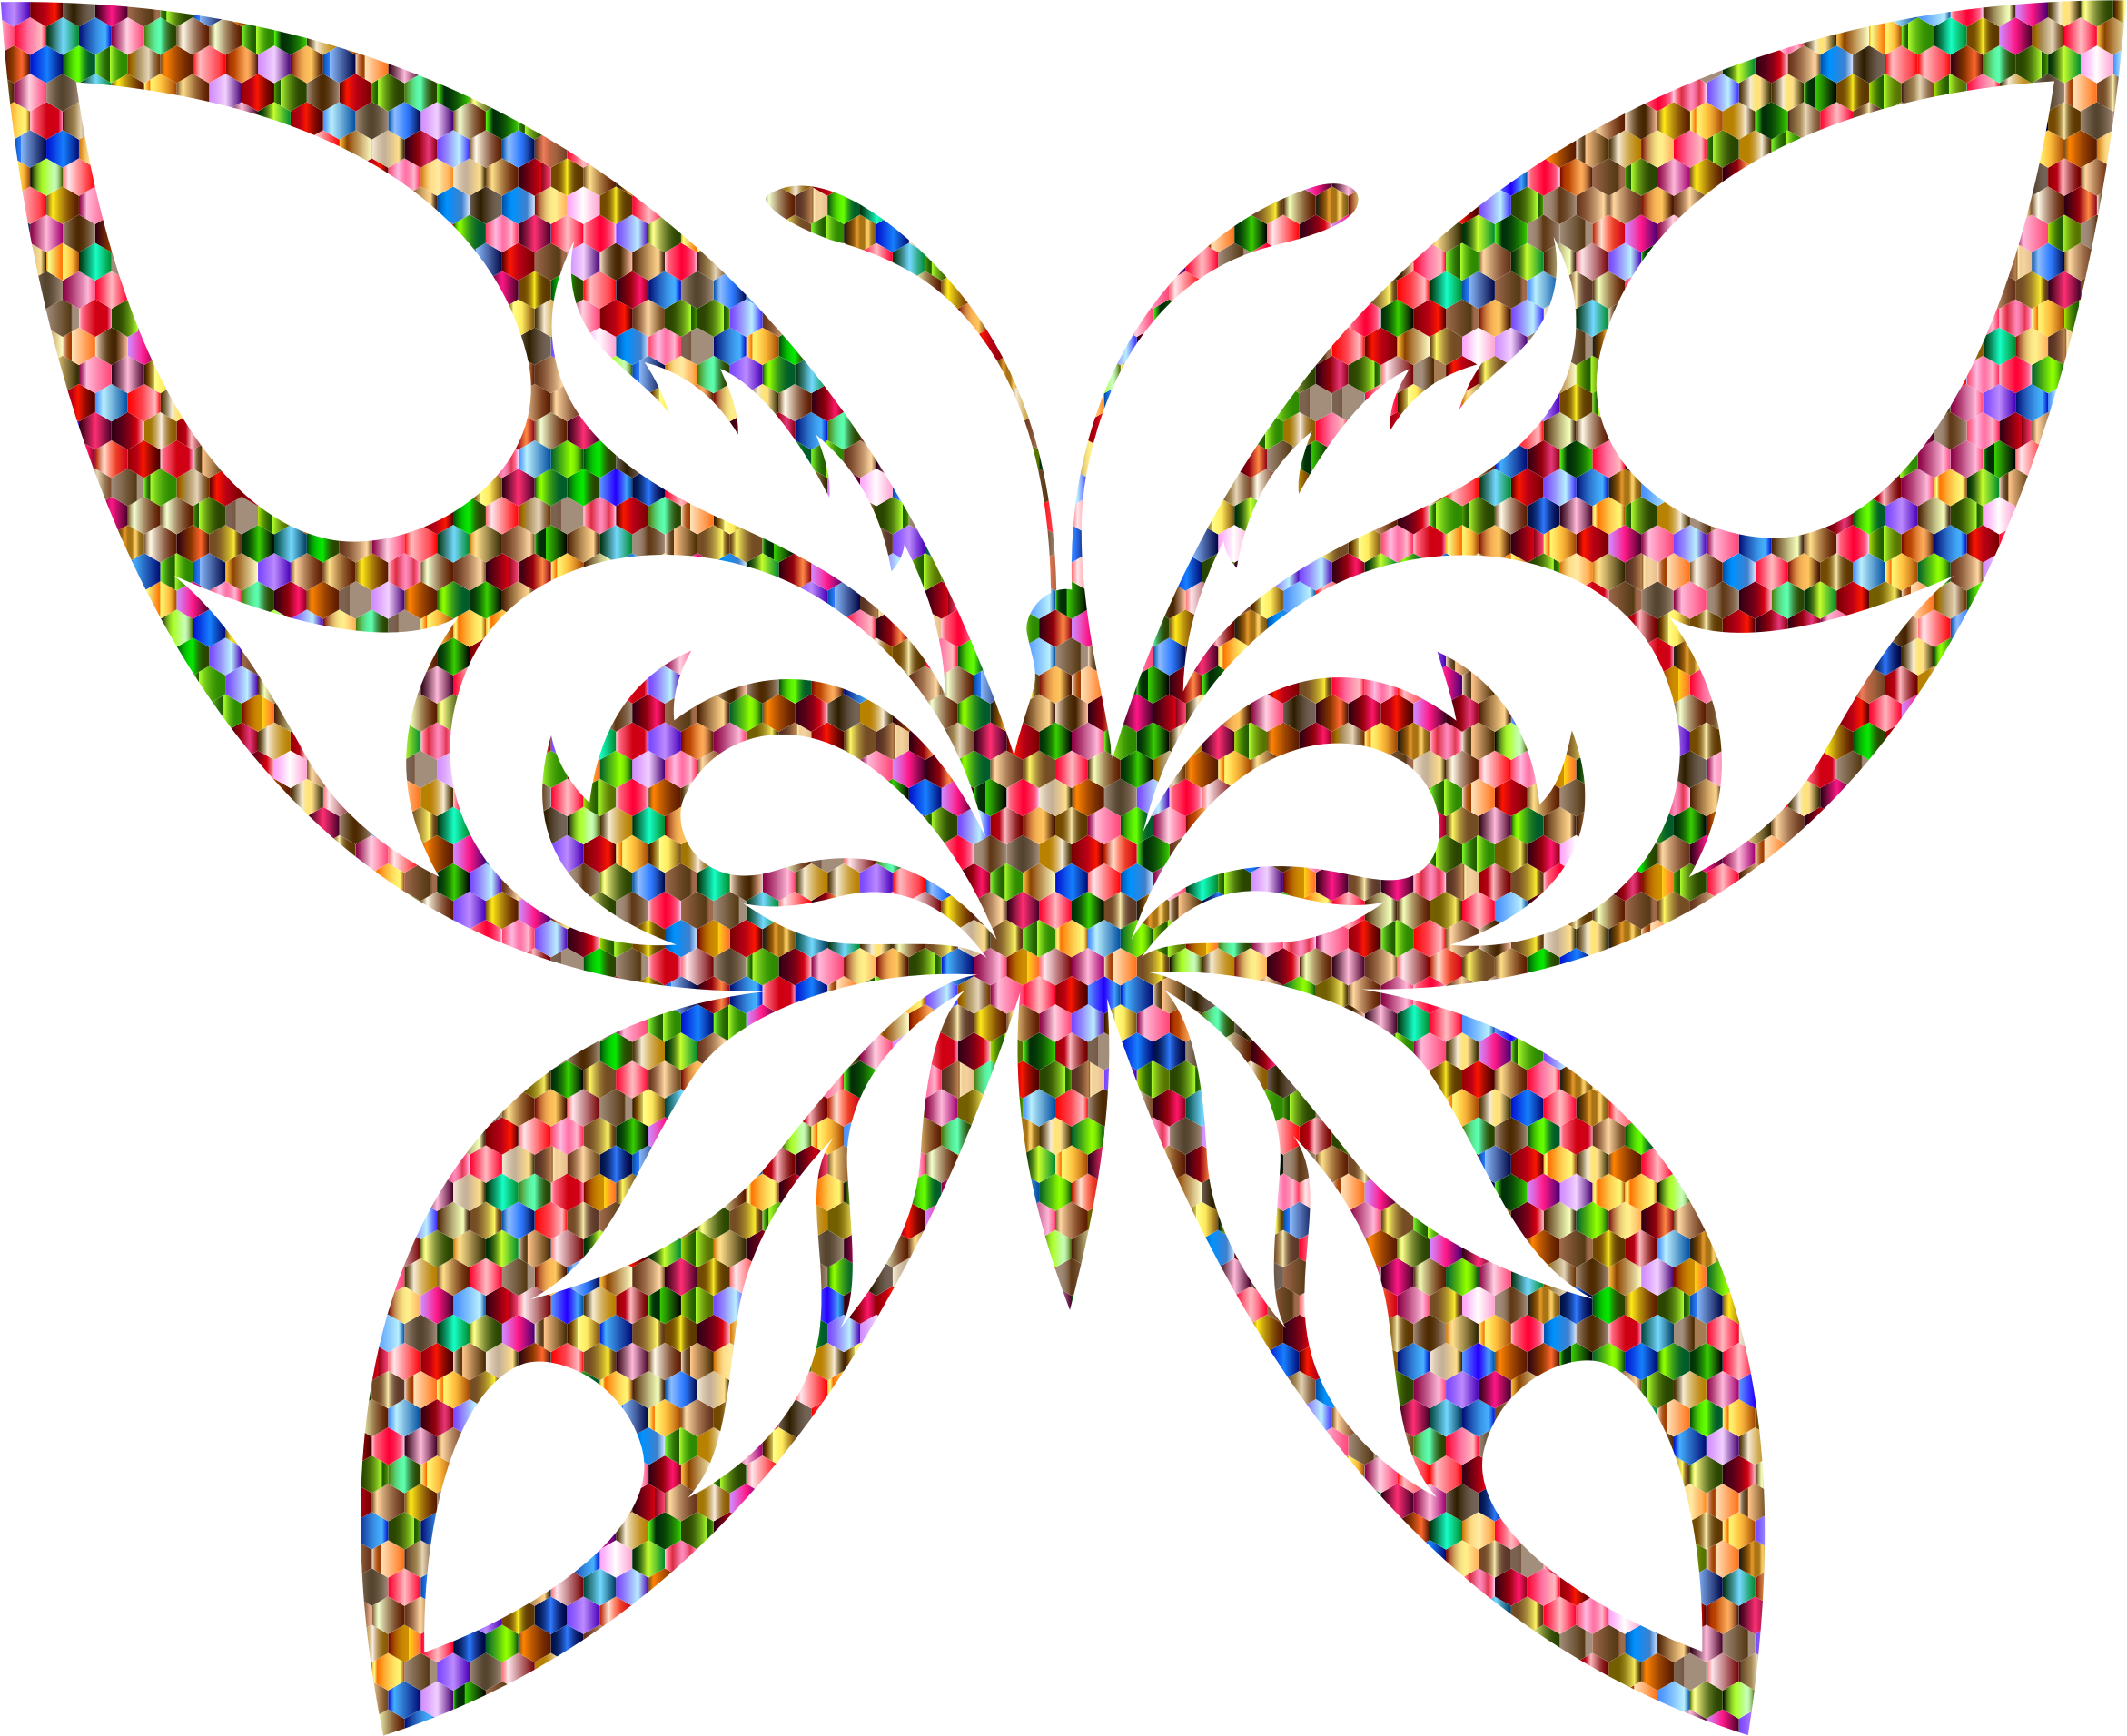 Vibrant Chromatic Hexagonal Tribal Butterfly Silhouette by GDJ